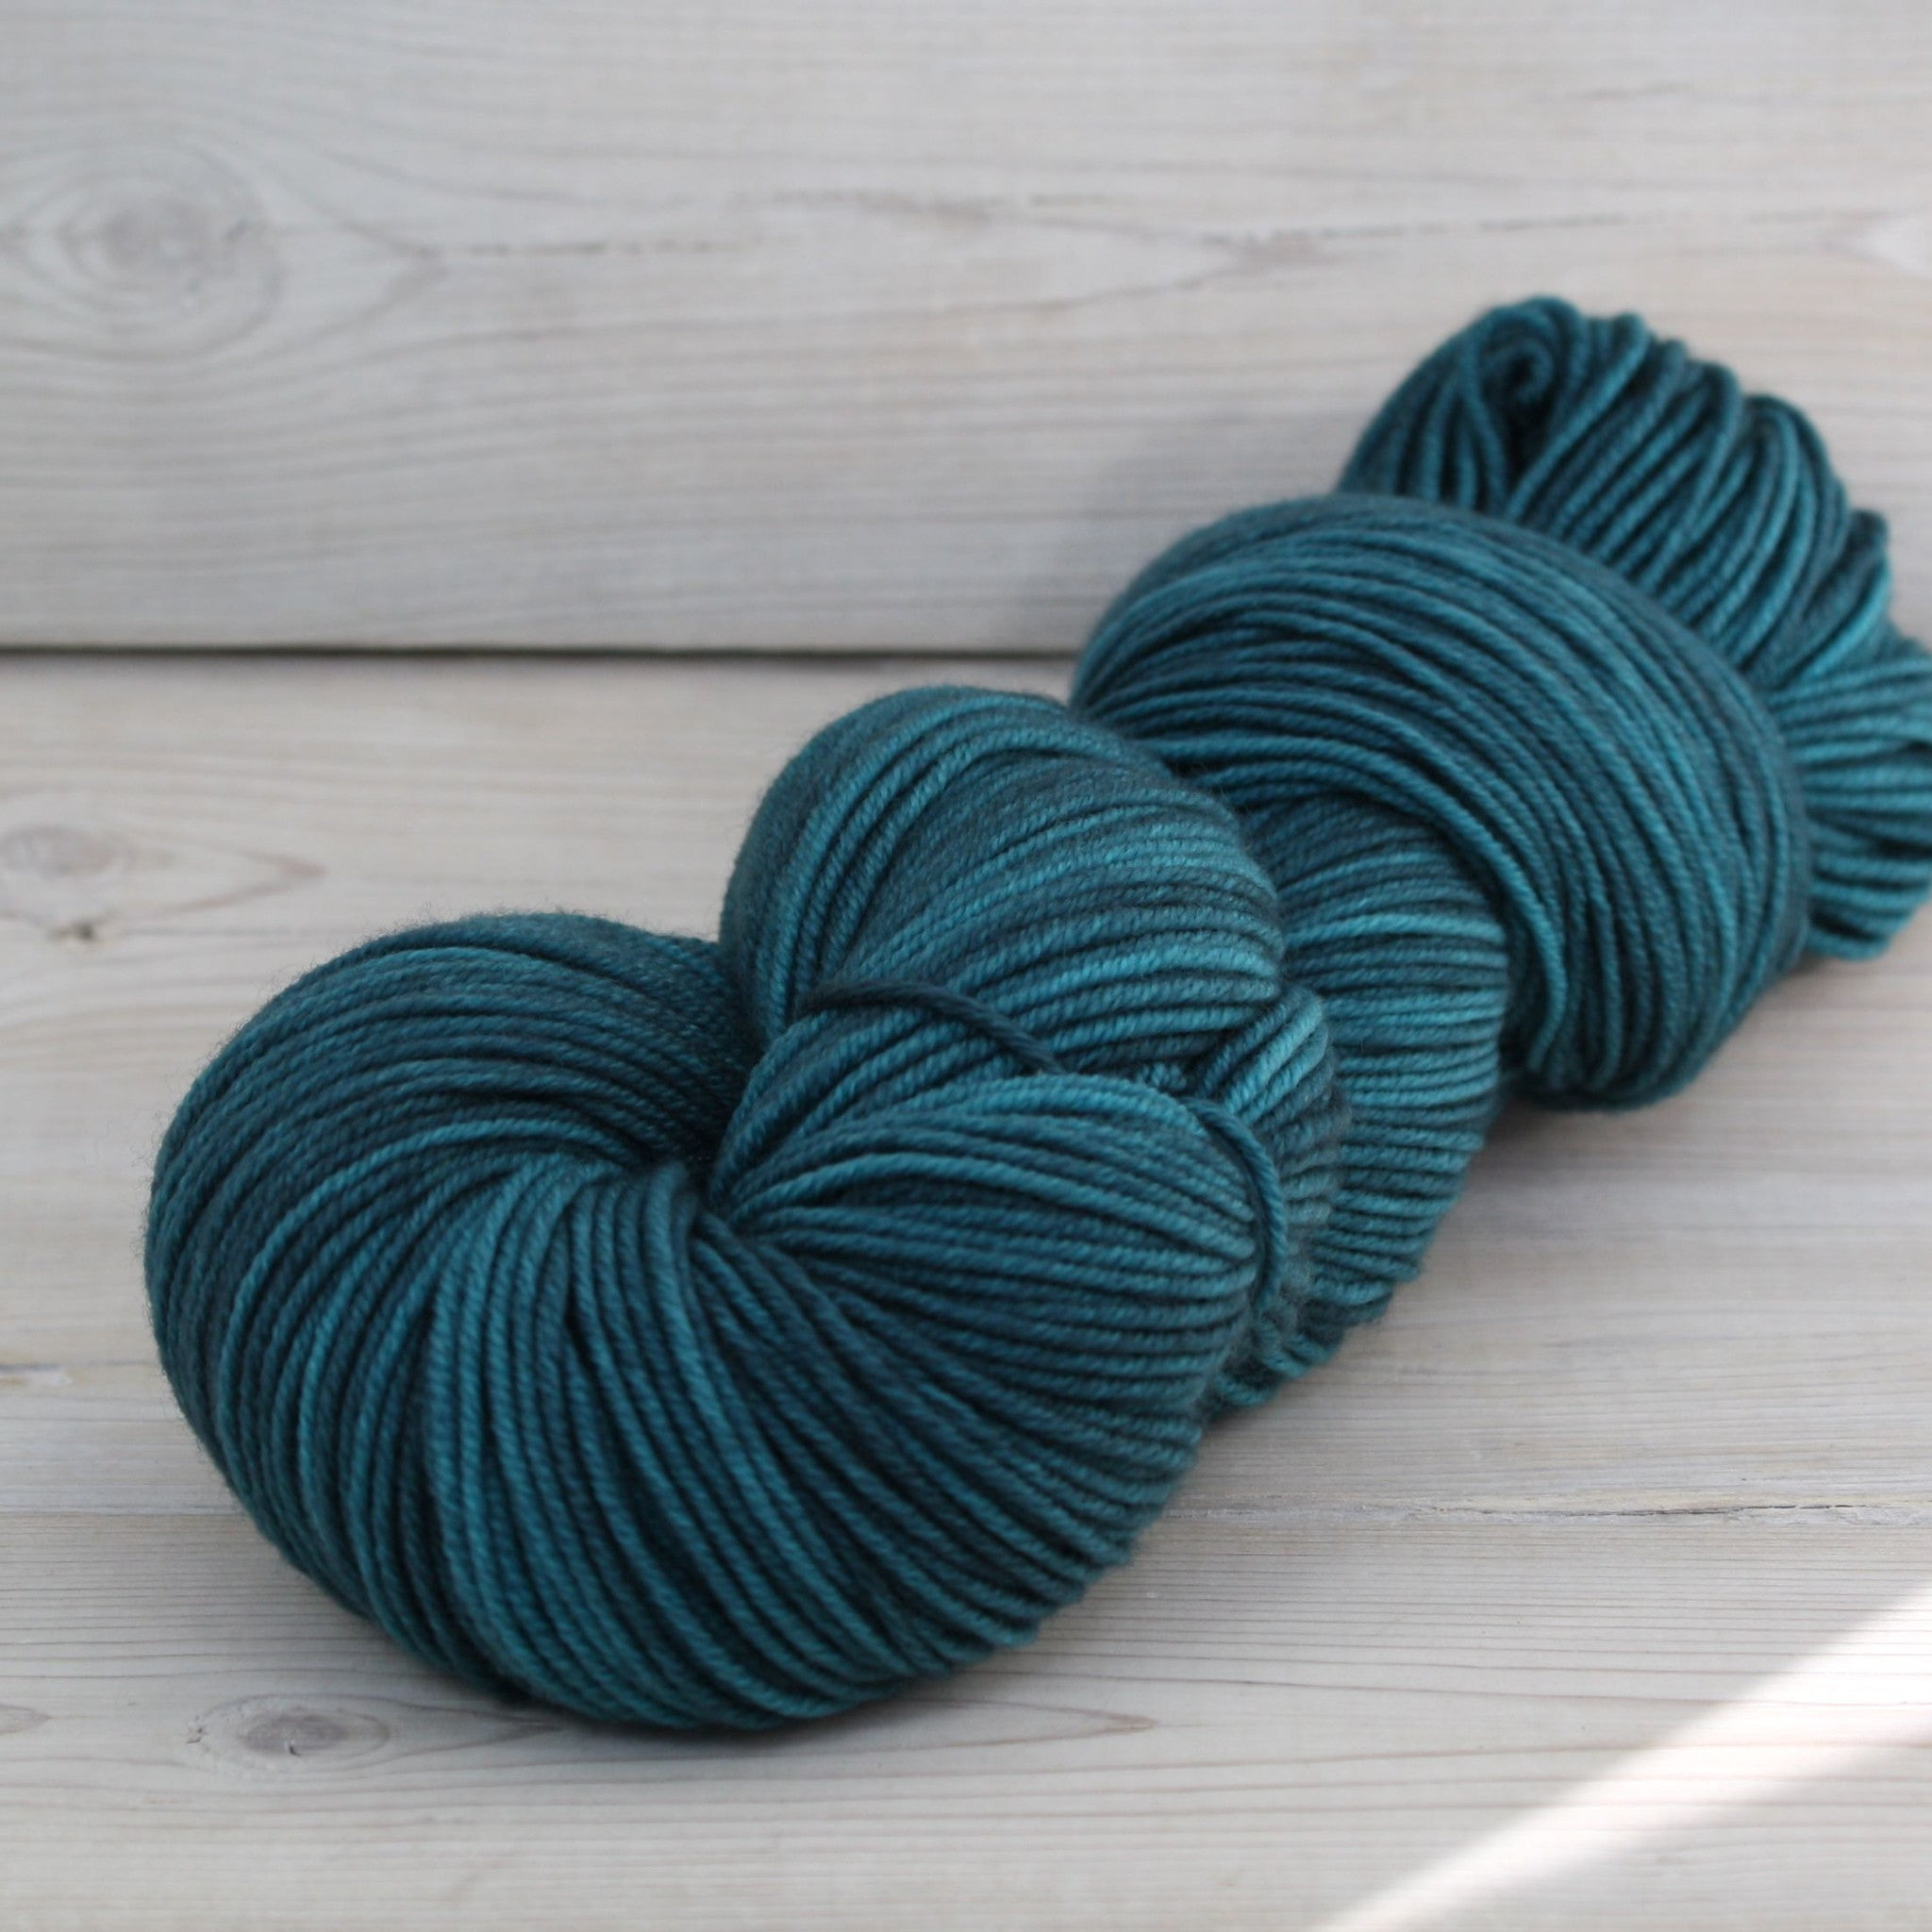 Luna Grey Fiber Arts Aspen Sport Yarn | Colorway: Techno